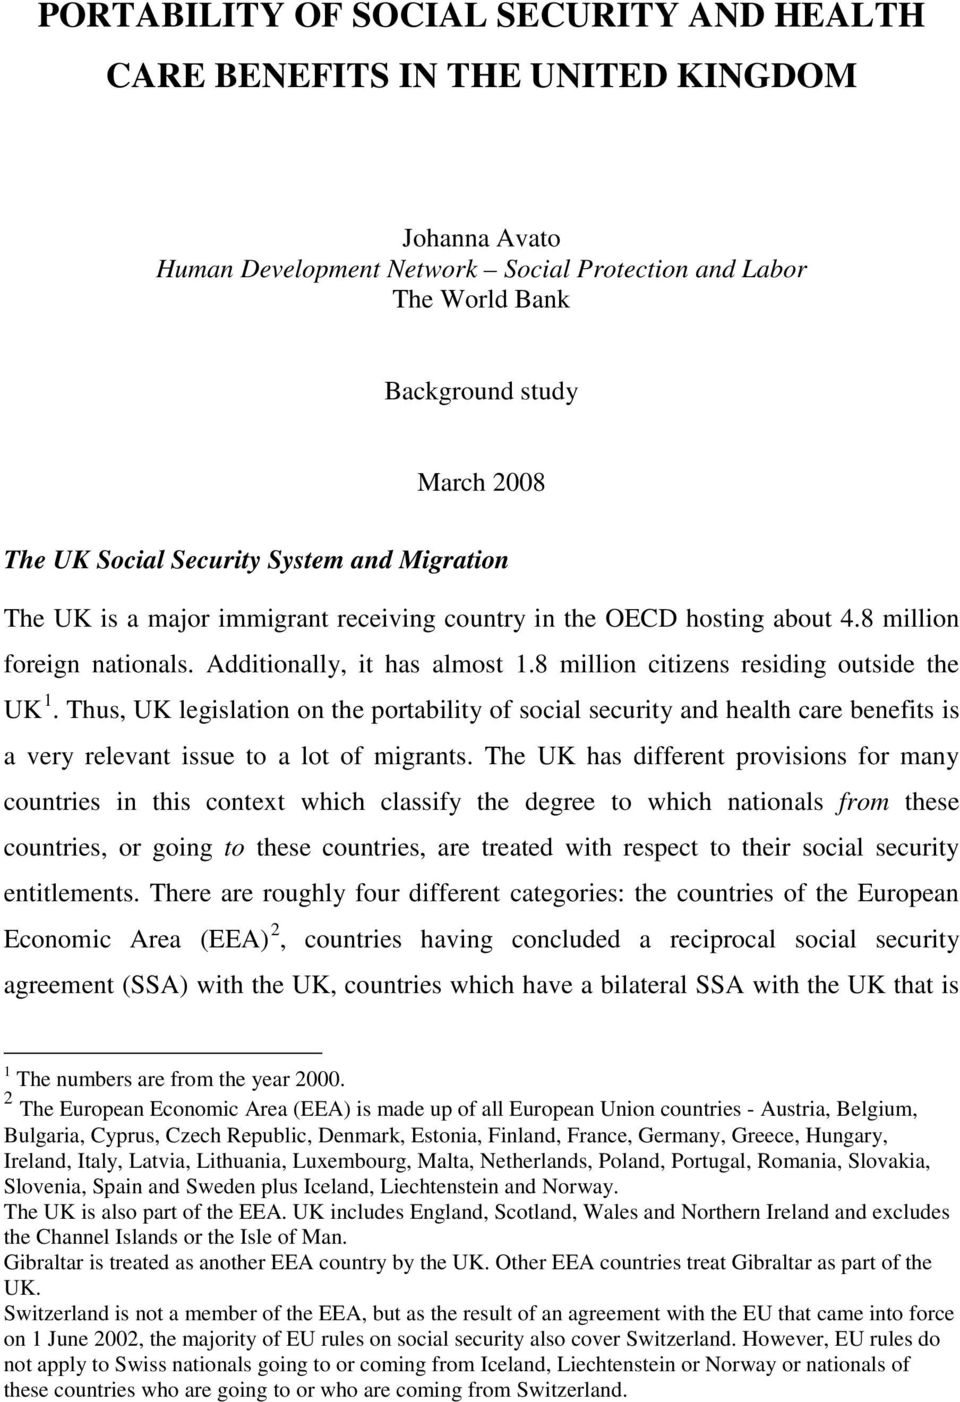 8 million citizens residing outside the UK 1. Thus, UK legislation on the portability of social security and health care benefits is a very relevant issue to a lot of migrants.